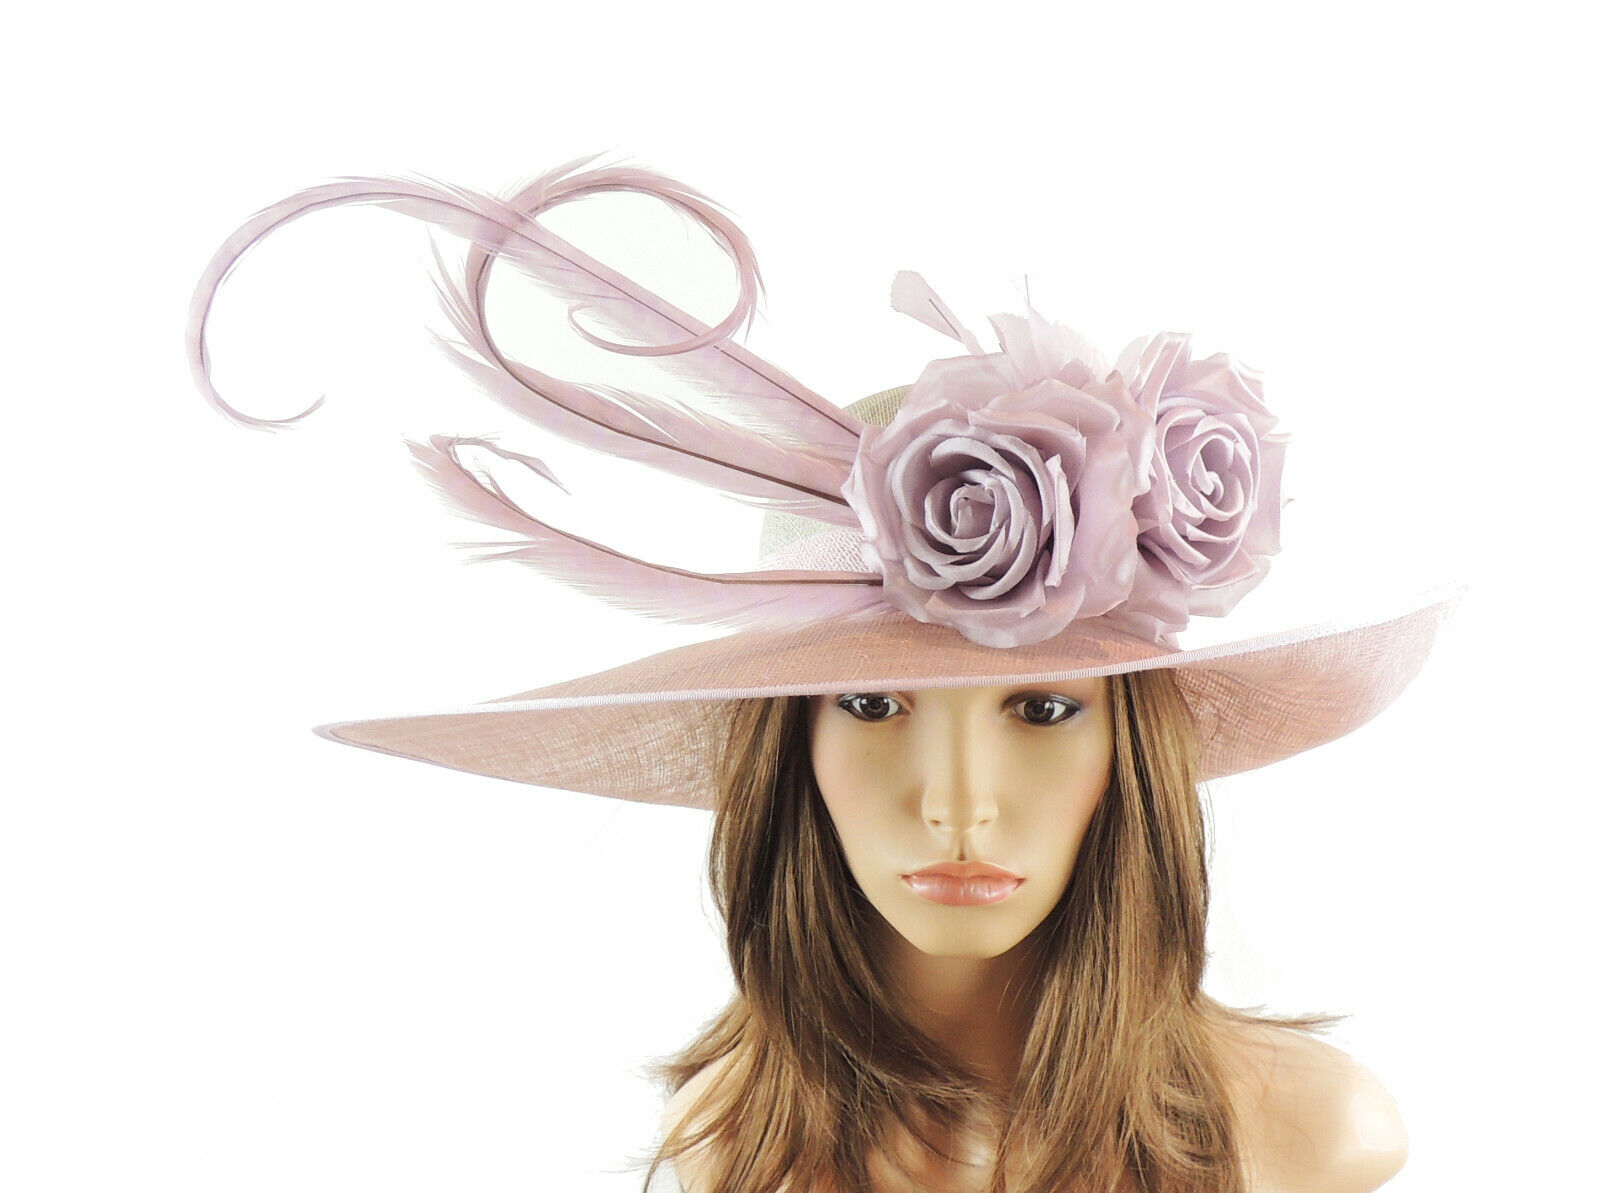 Lilac Ascot Hat for Weddings, Ascot, Melbourne Cup HA